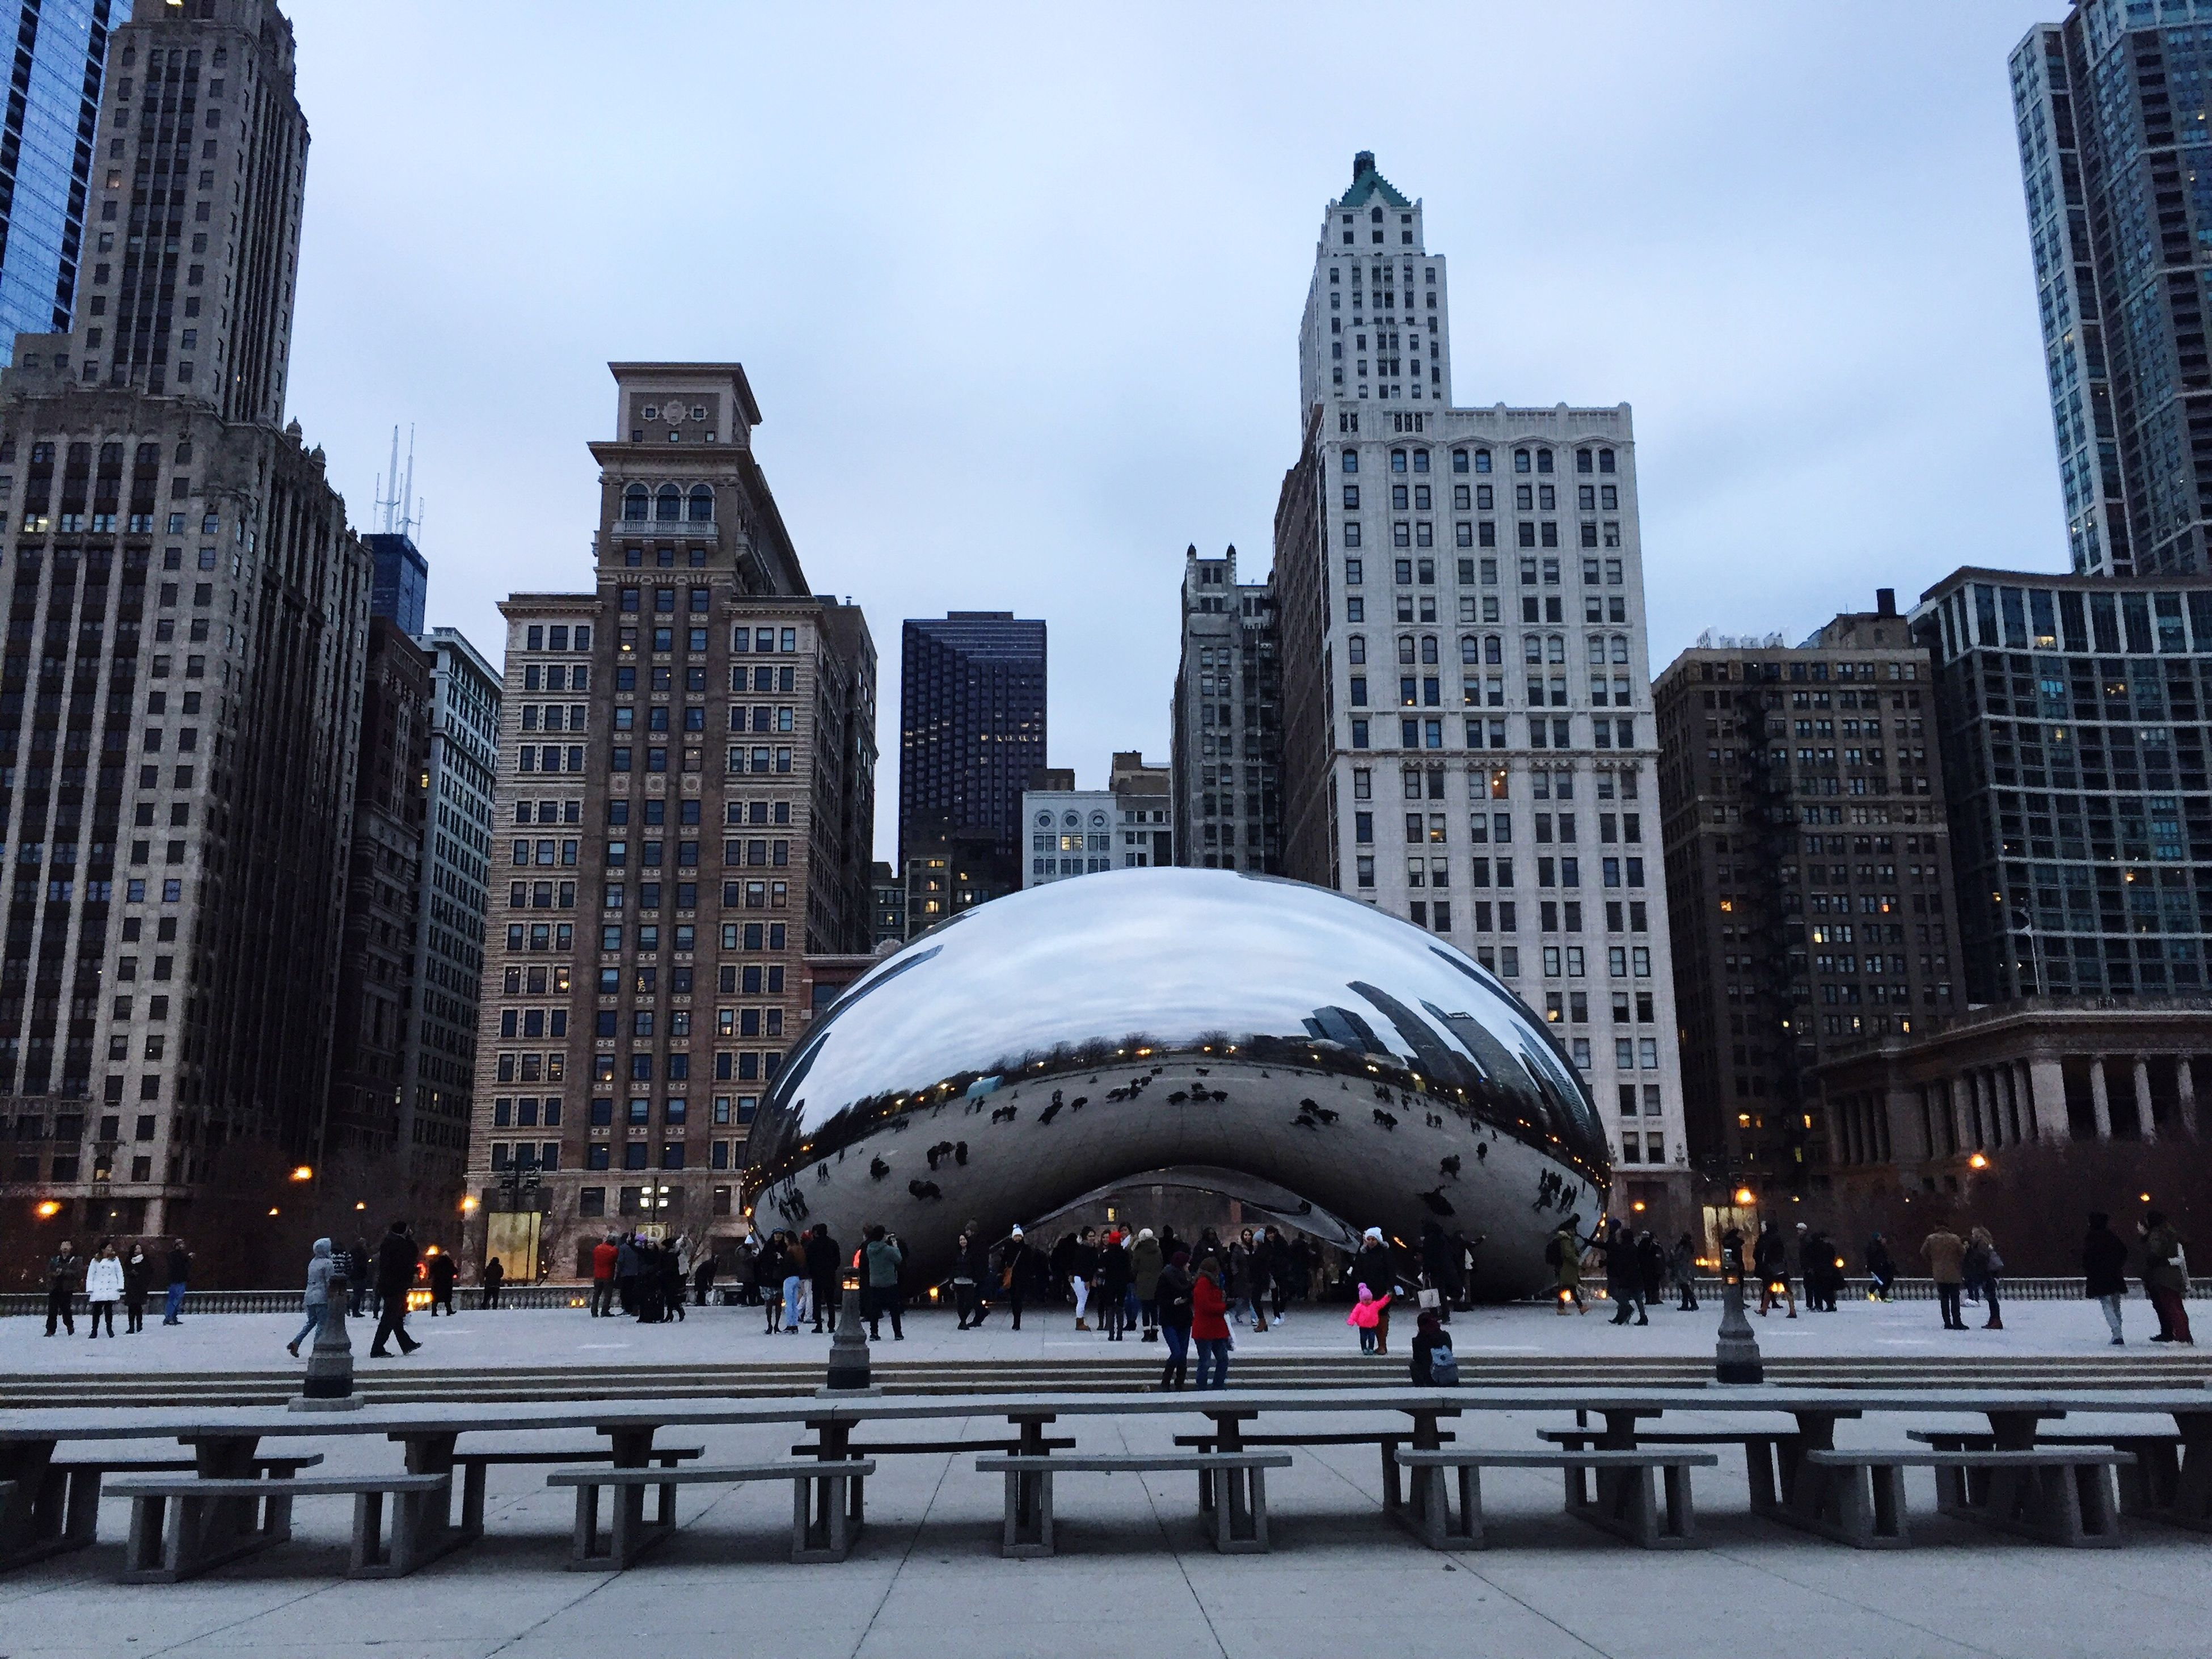 building exterior, architecture, city, built structure, modern, travel destinations, skyscraper, outdoors, sky, urban skyline, large group of people, cityscape, day, people, ice rink